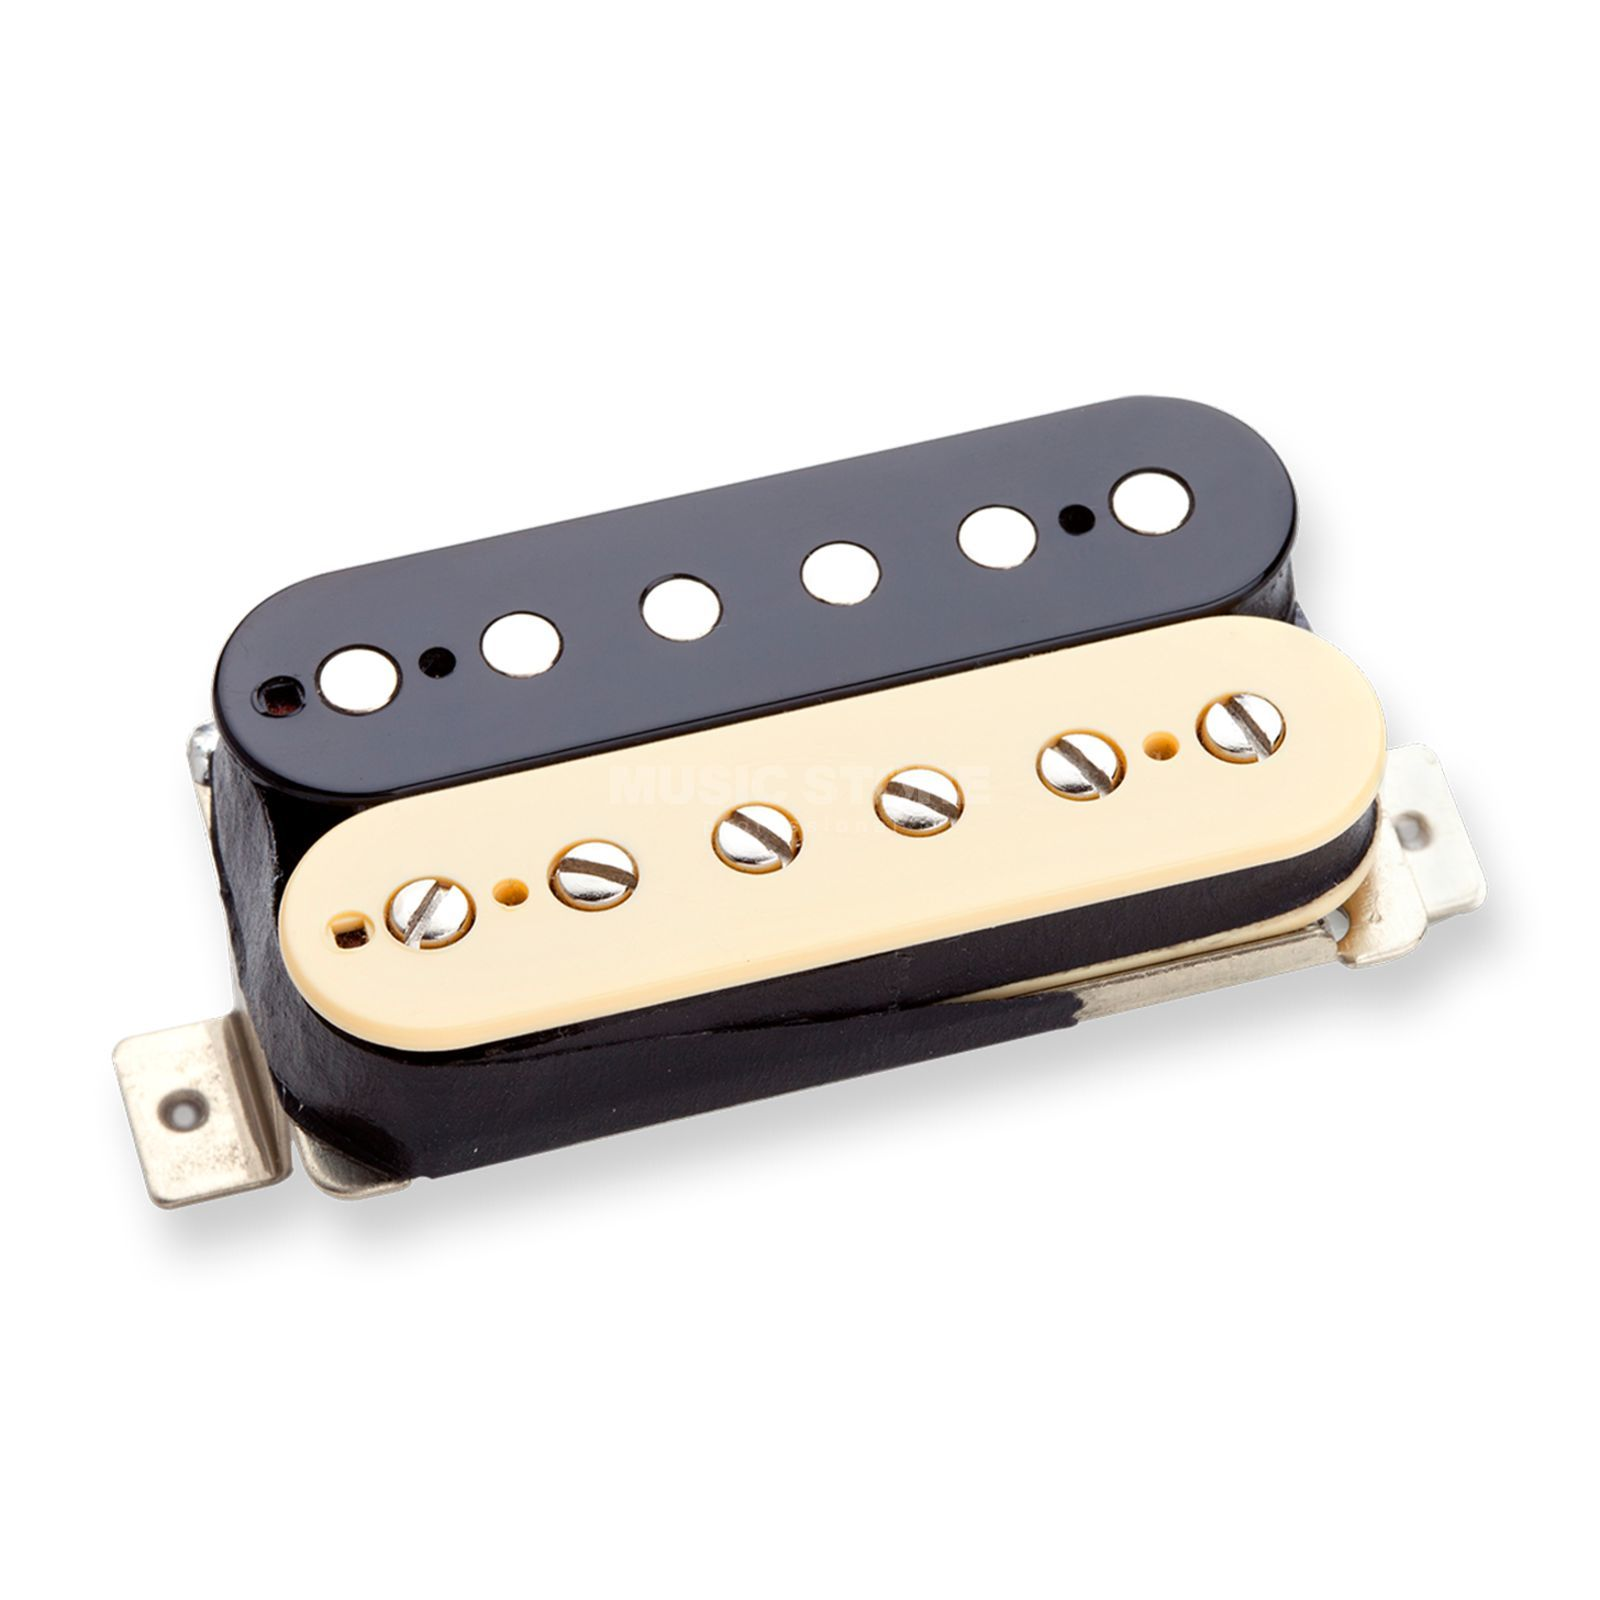 Seymour Duncan TB-59B ZEB '59 Model Trembucker Zebra Bridge Produktbild